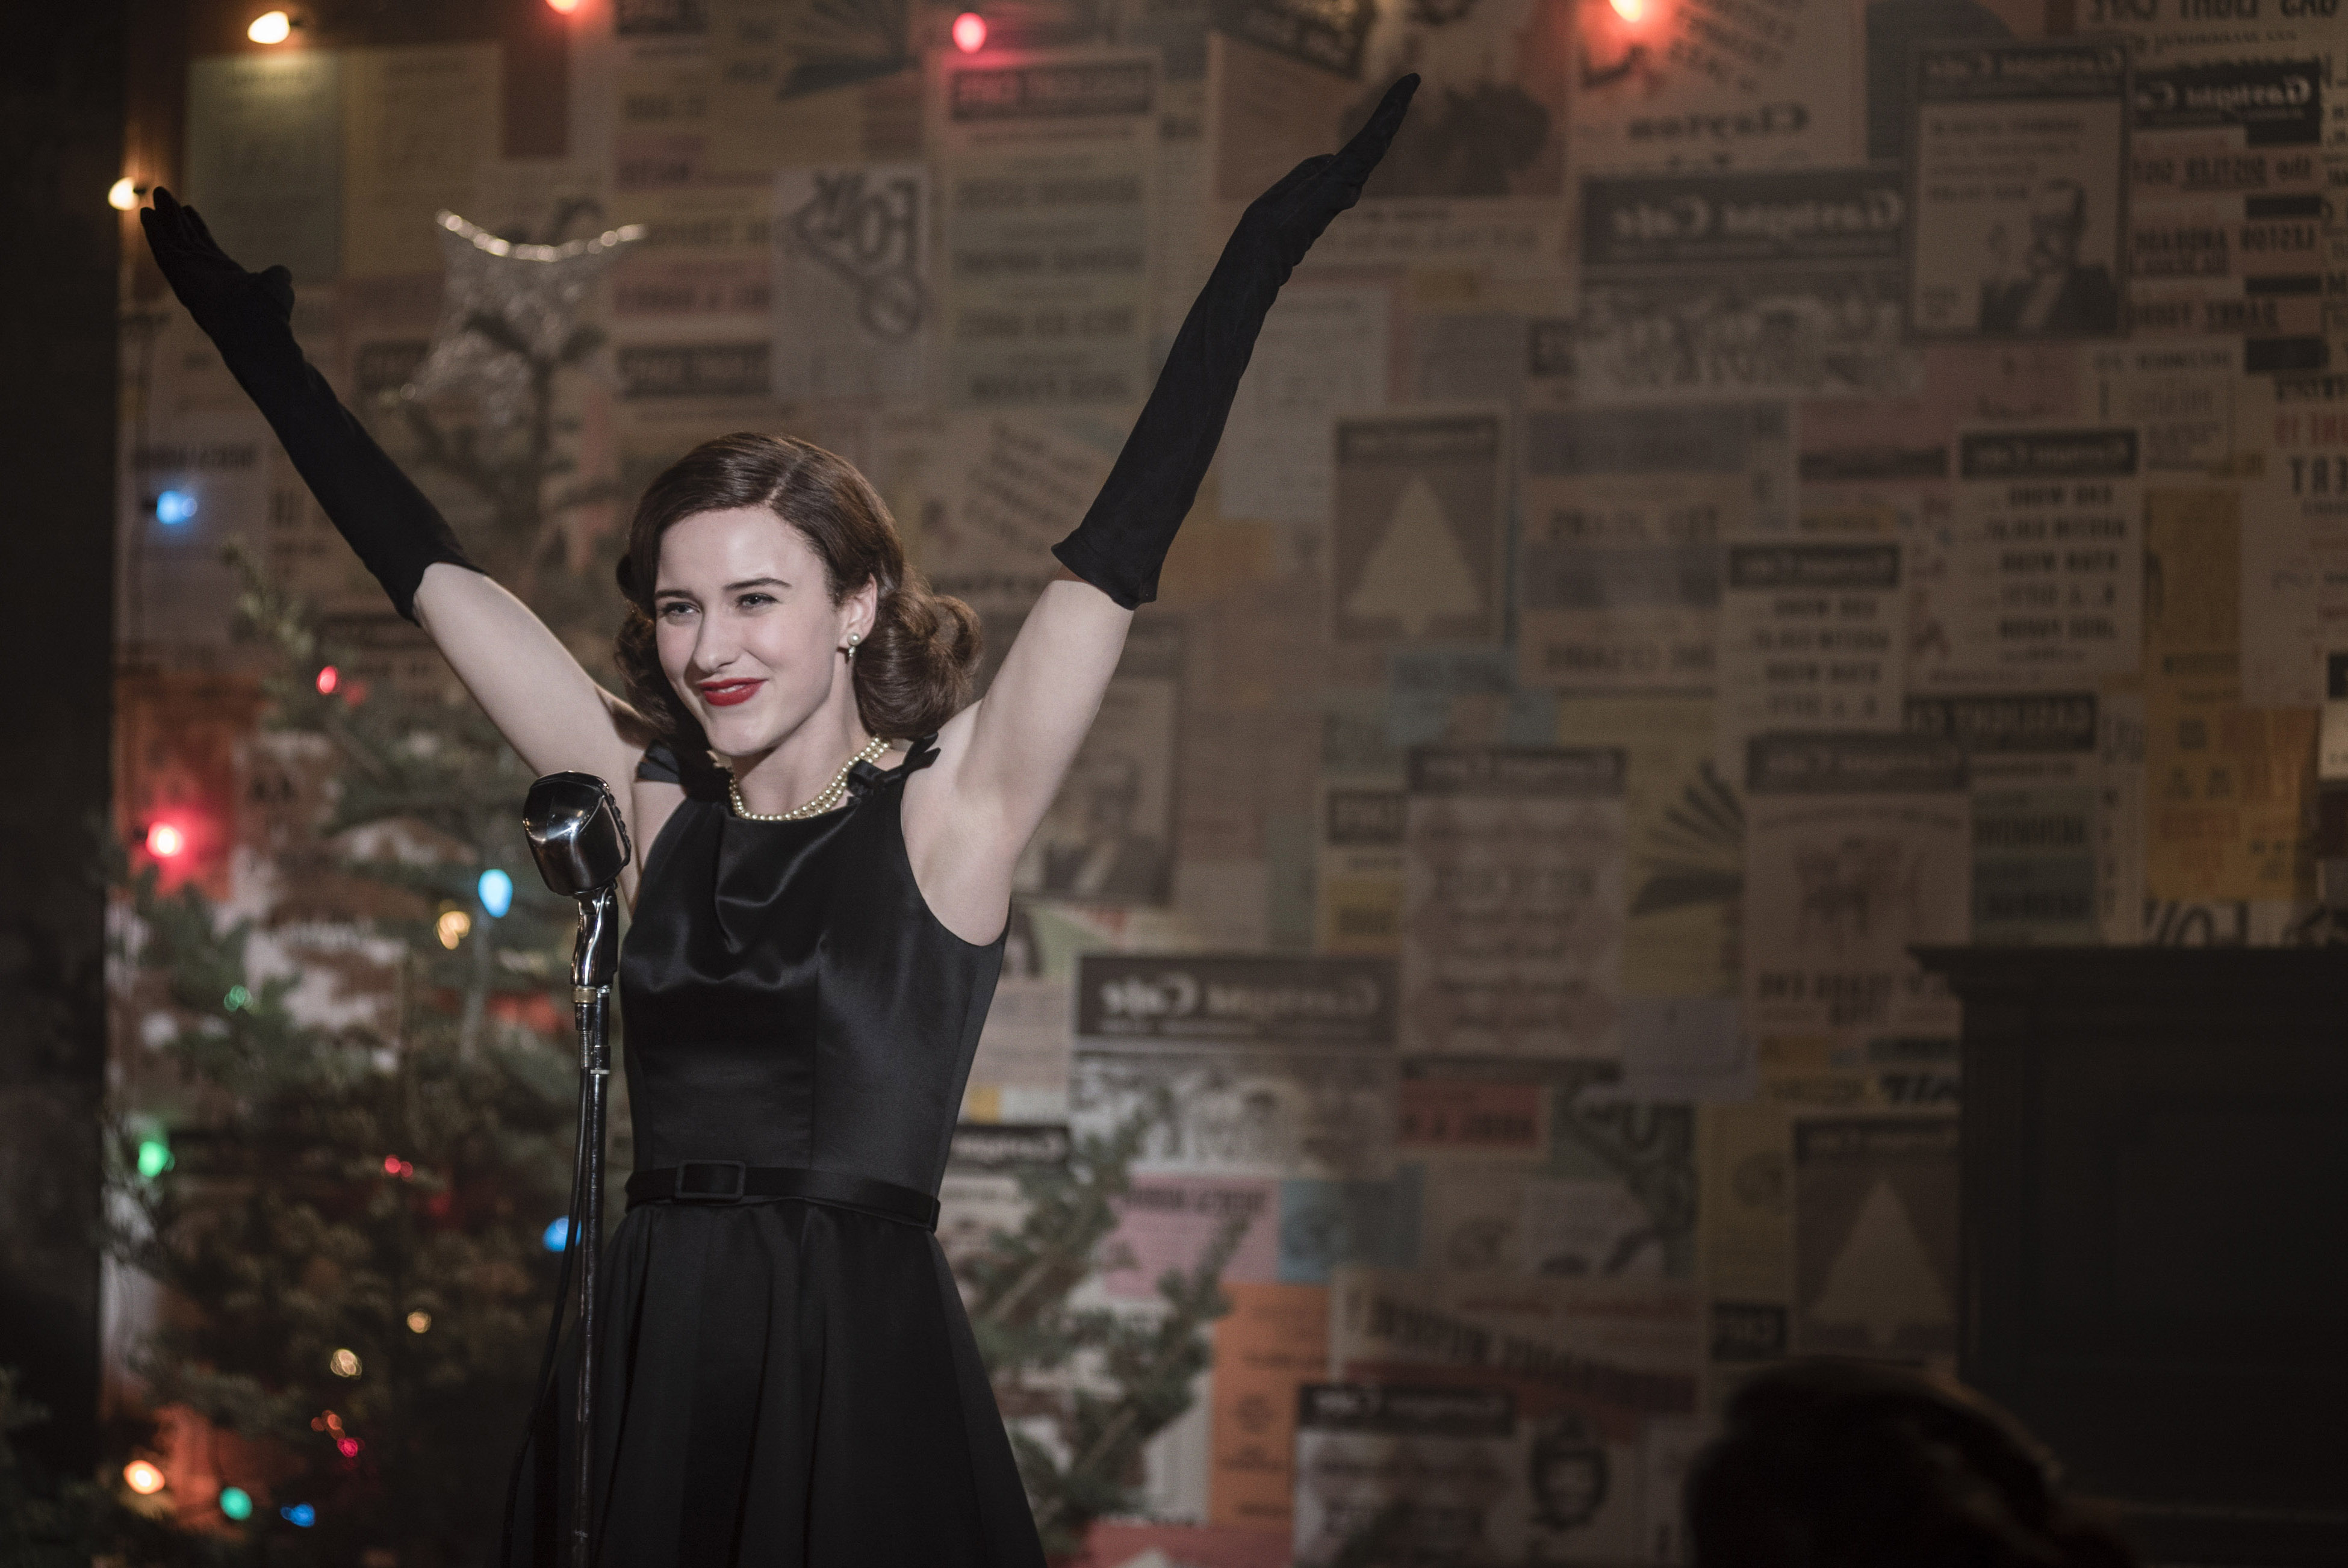 The Marvelous Mrs. Maisel – Season 1